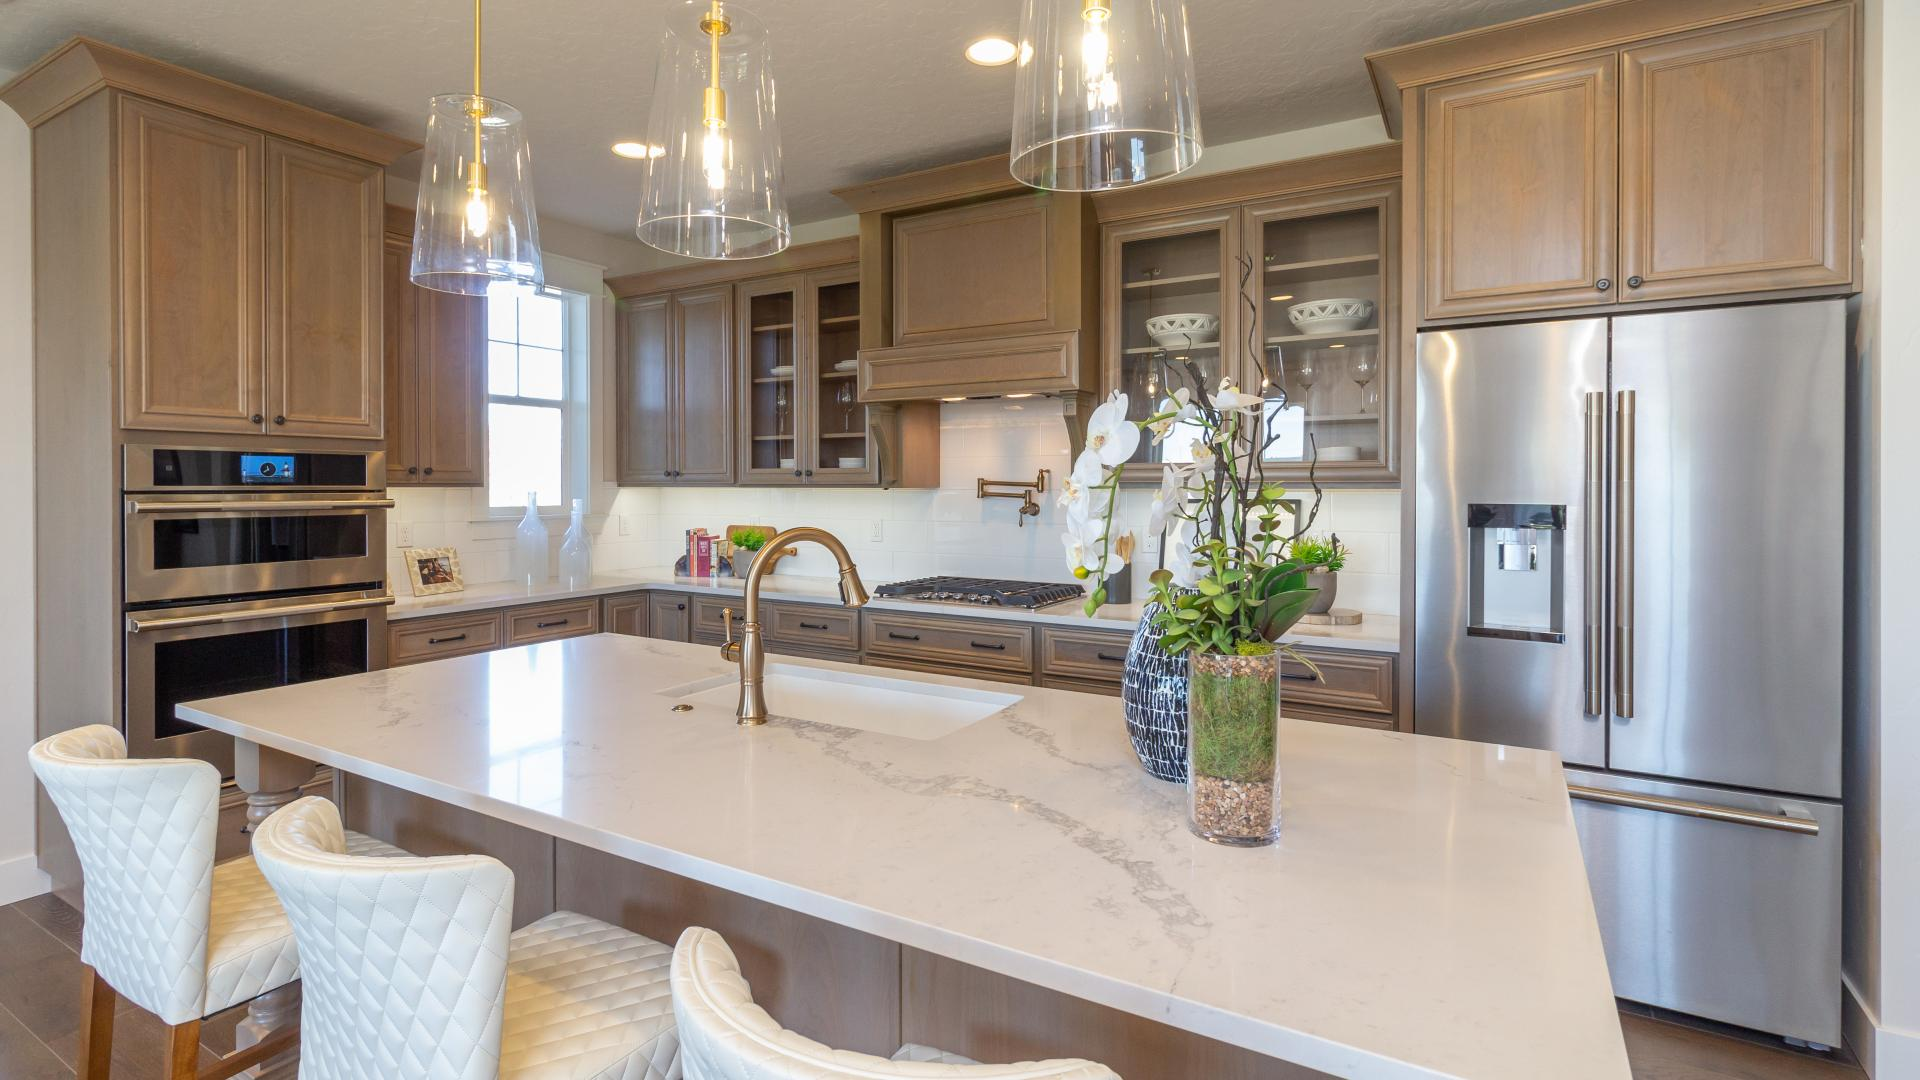 Spacious kitchen with double wall-oven and pot-filler faucet